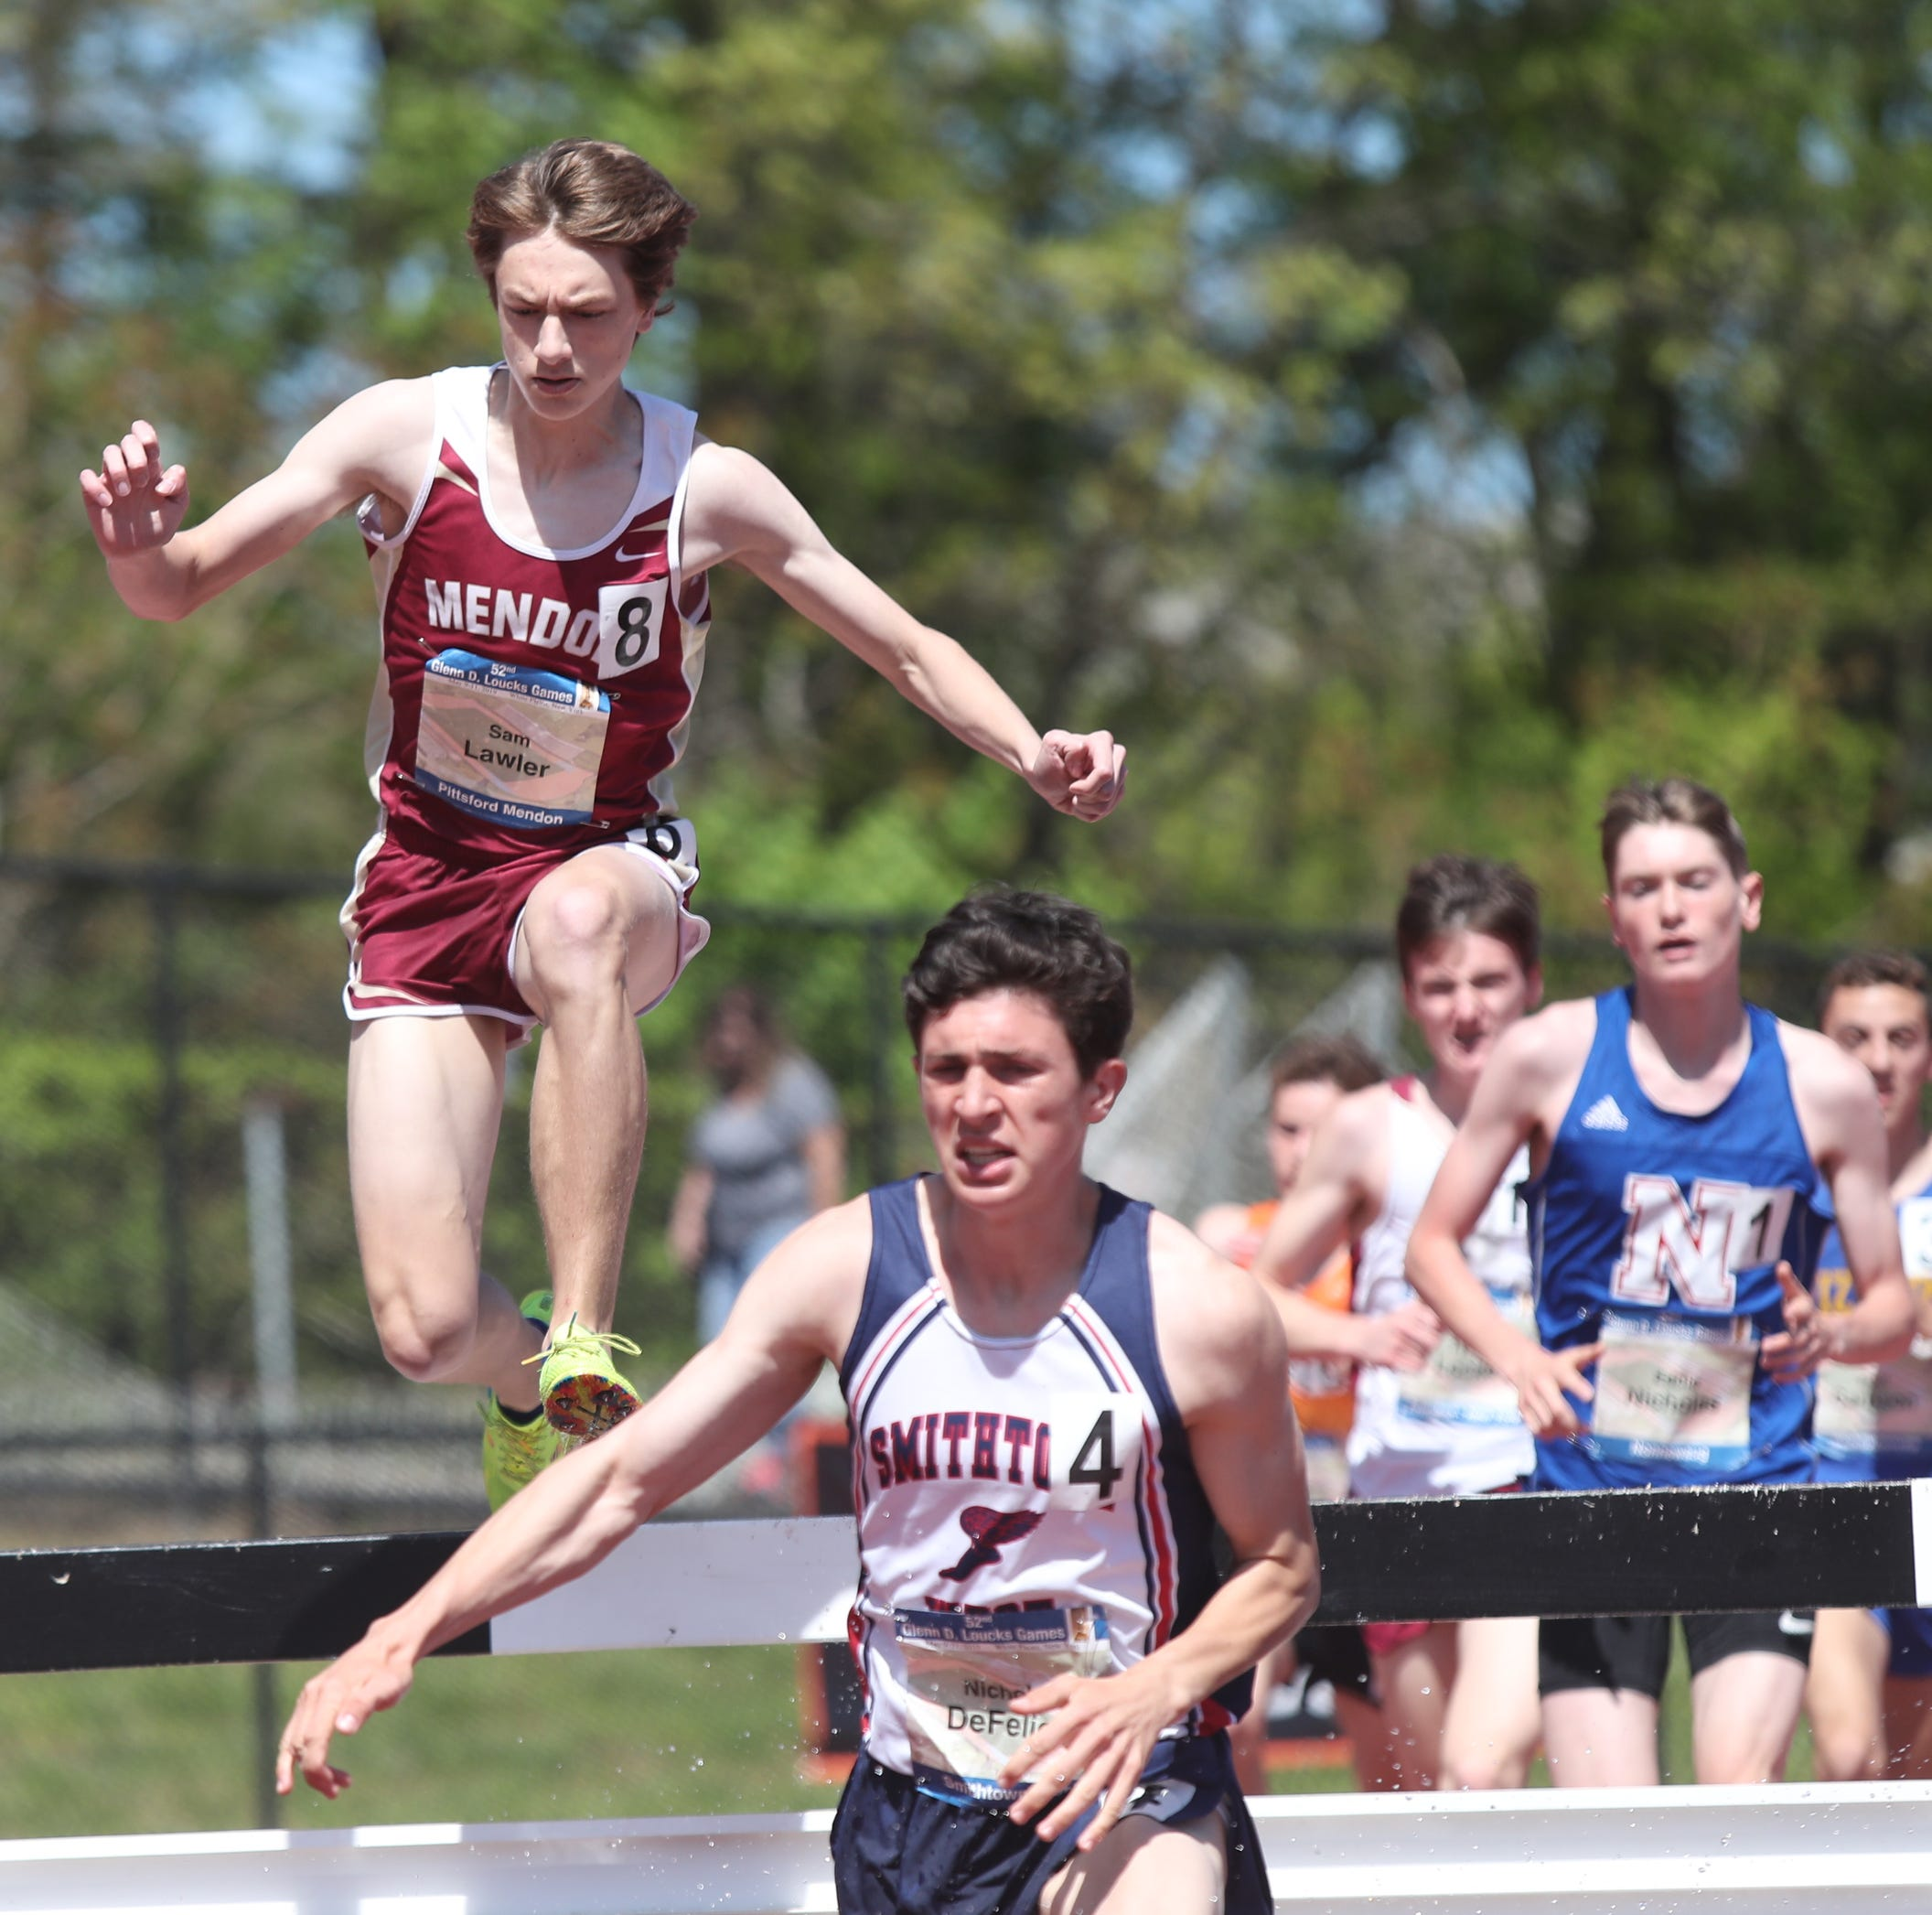 Pittsford Mendon's Sam Lawler takes podium in steeplechase at Loucks Games